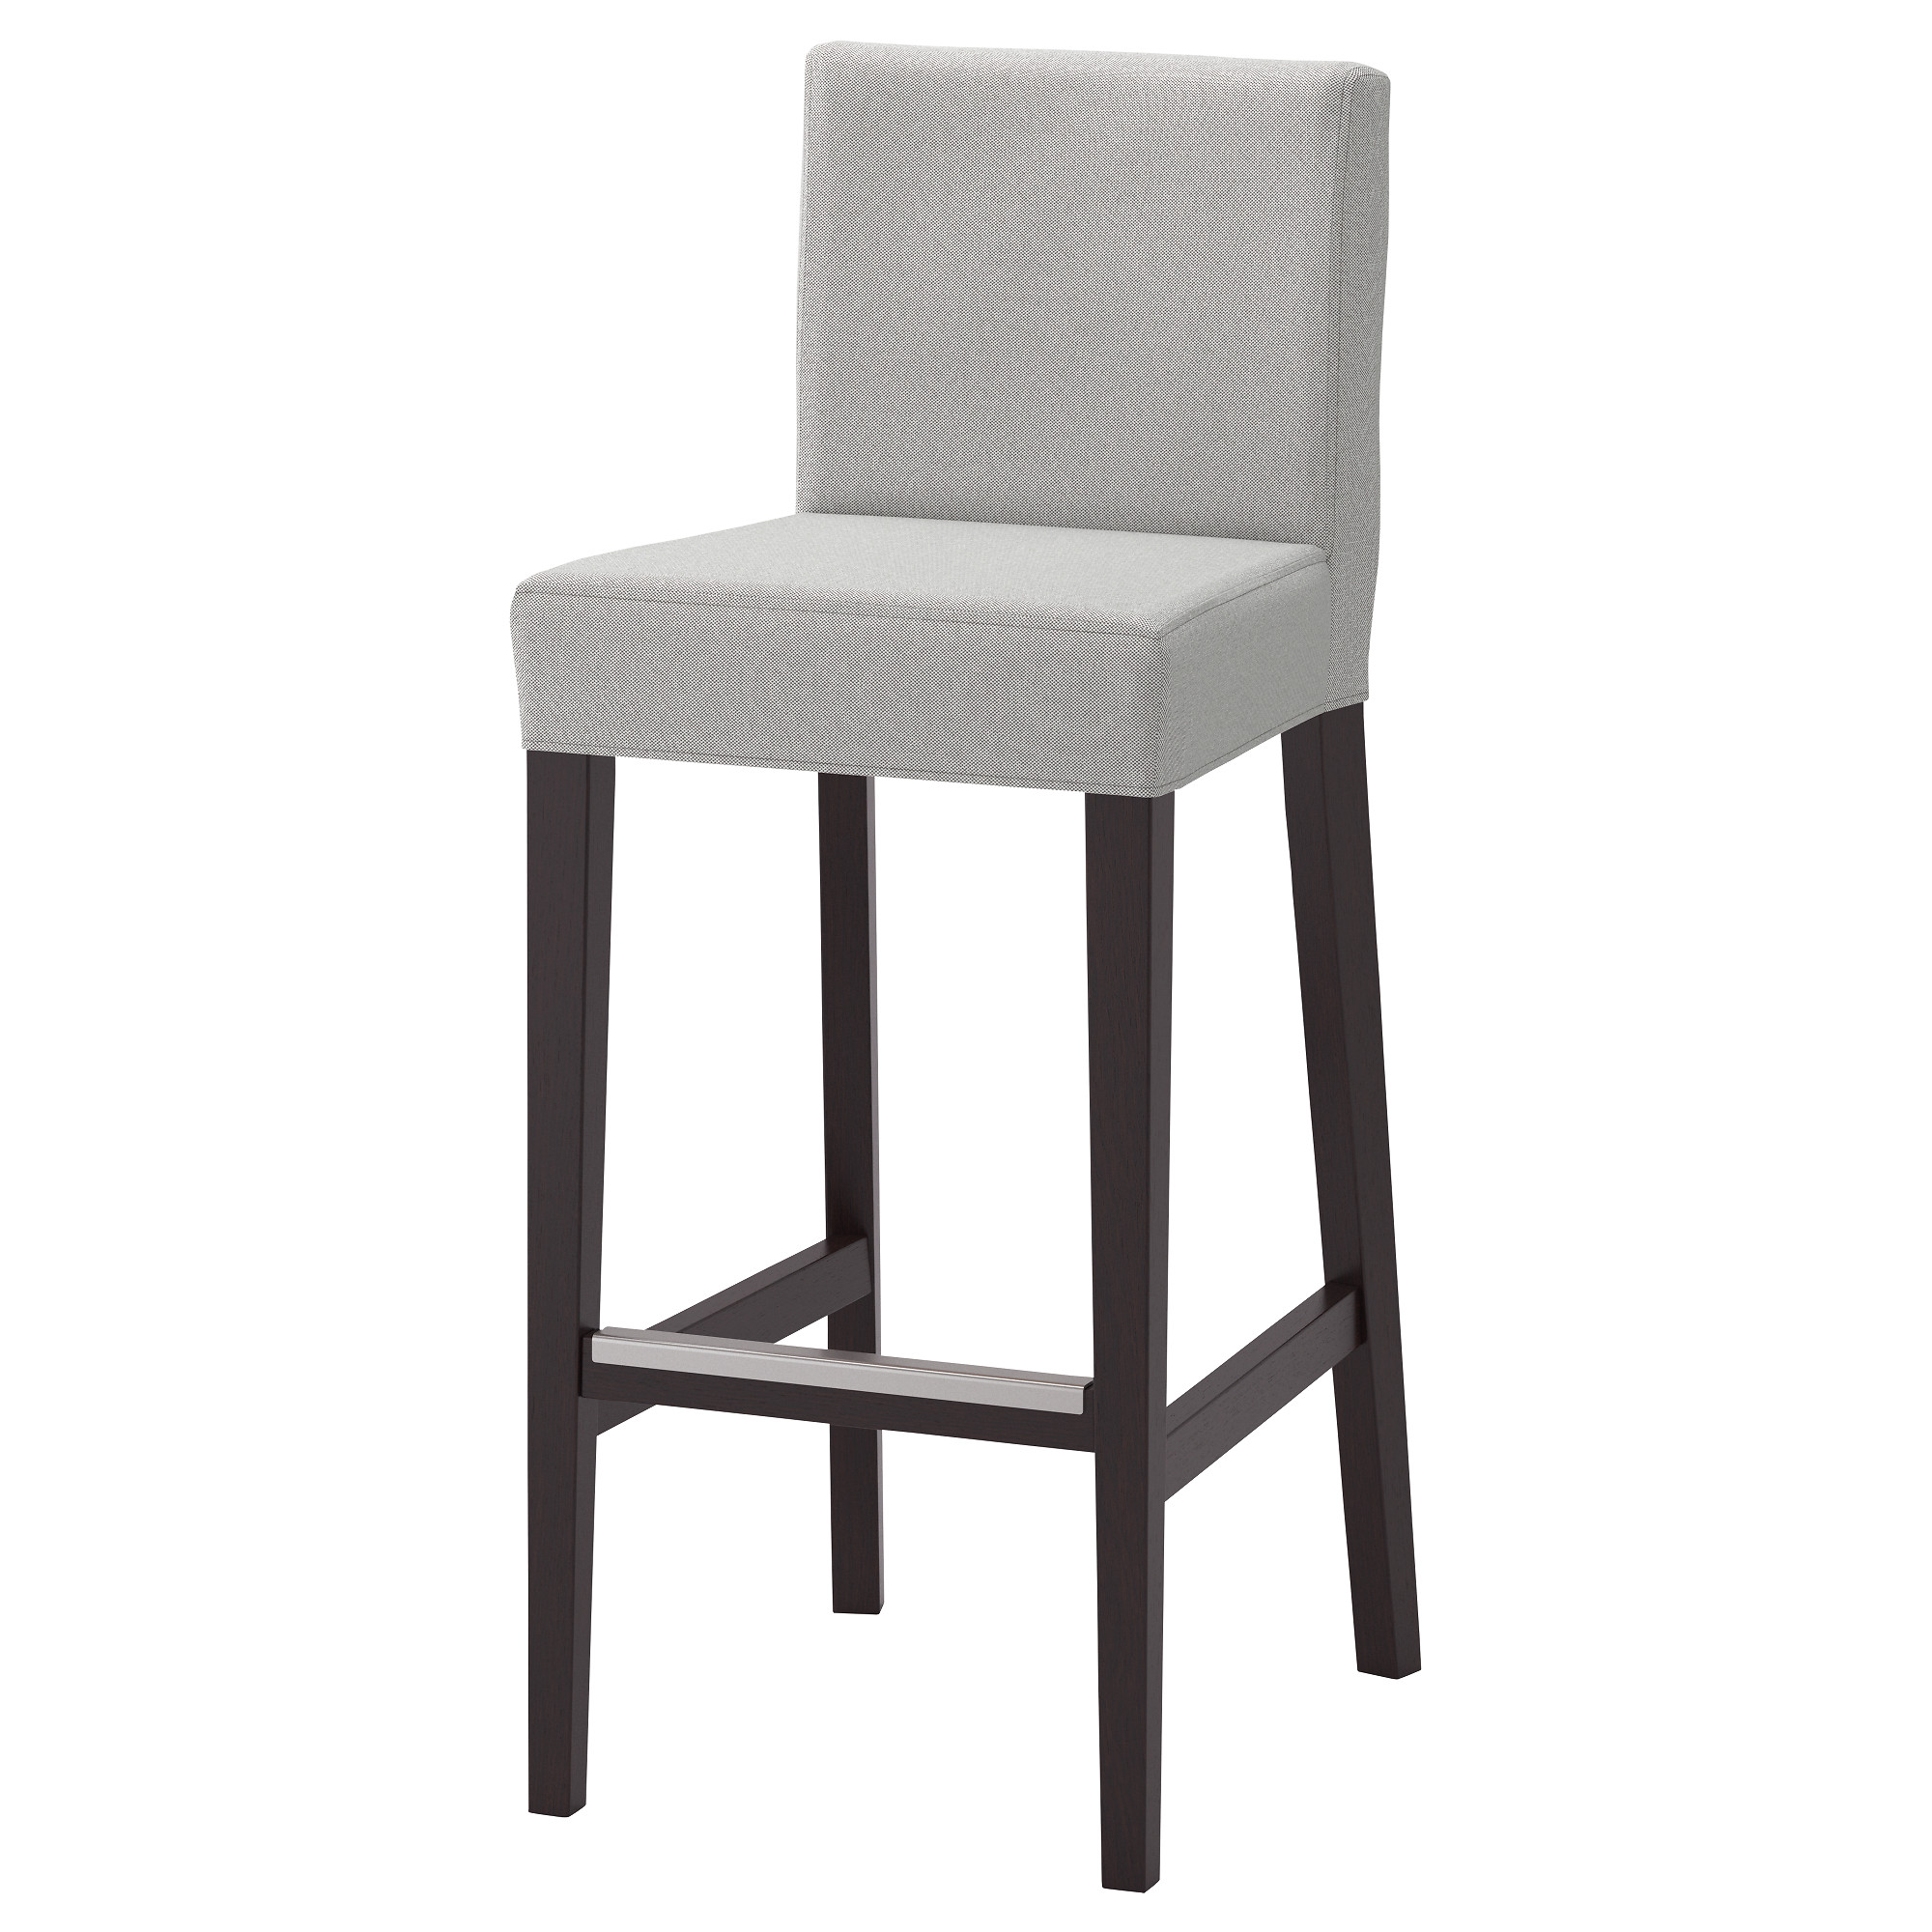 bar tables  chairs  bar tables  bar stools  ikea - henriksdal bar stool with backrest brownblack orrsta light gray testedfor